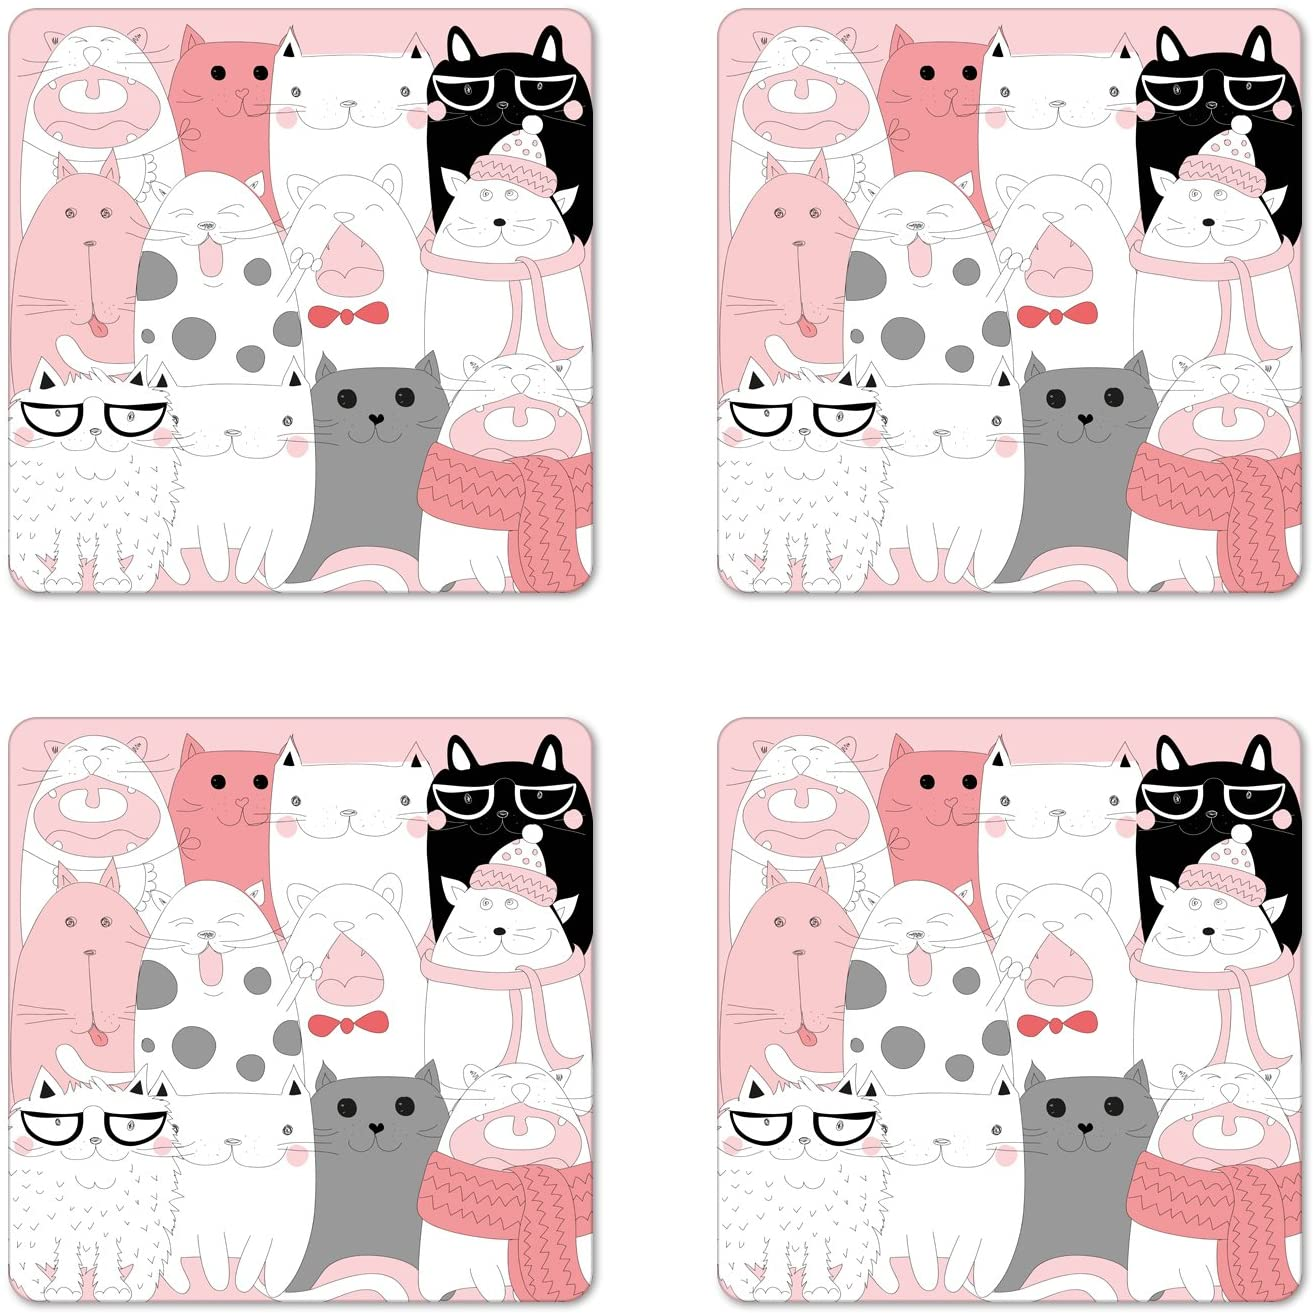 Ambesonne Cat Coaster Set of 4, Cartoon Kittens Funny Smiling Glasses Scarfs Doodle Humorous Design, Square Hardboard Gloss Coasters, Standard Size, Pink White